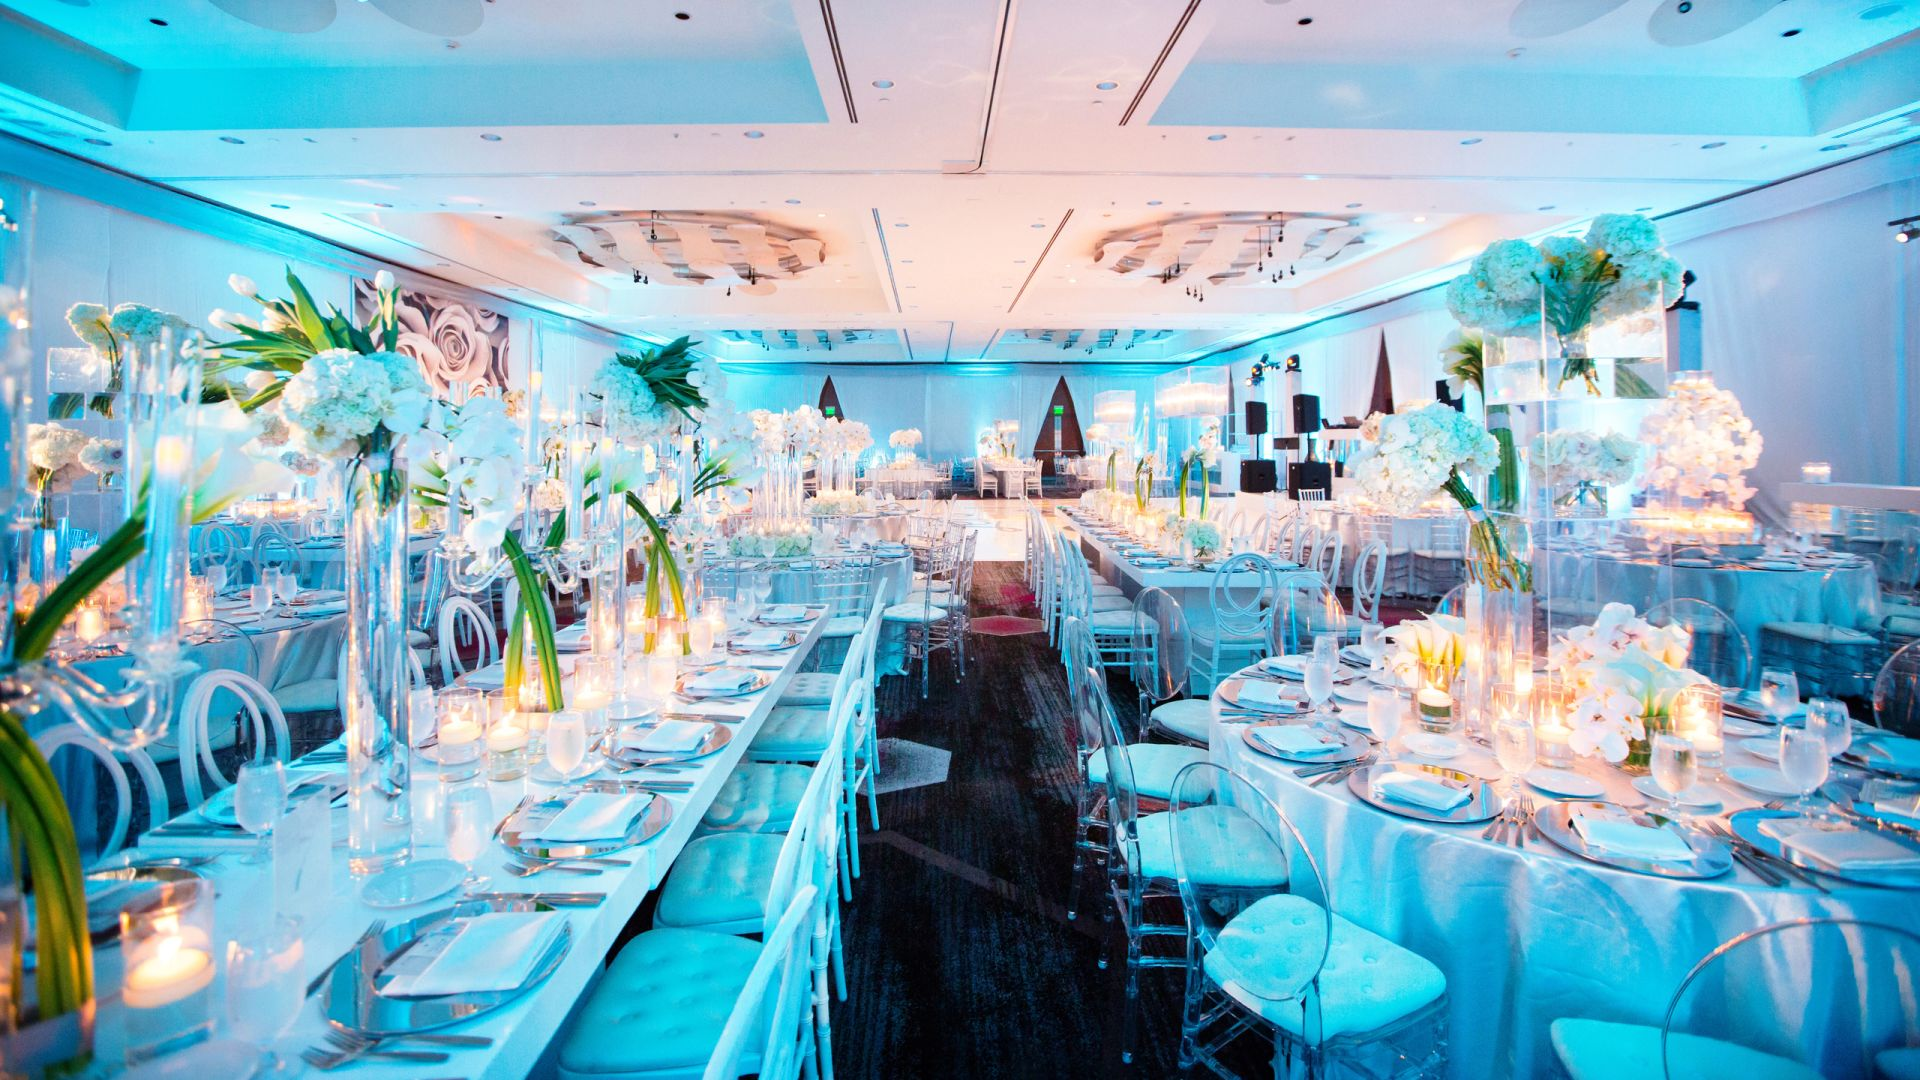 Organización de bodas | Loews Hollywood Hotel